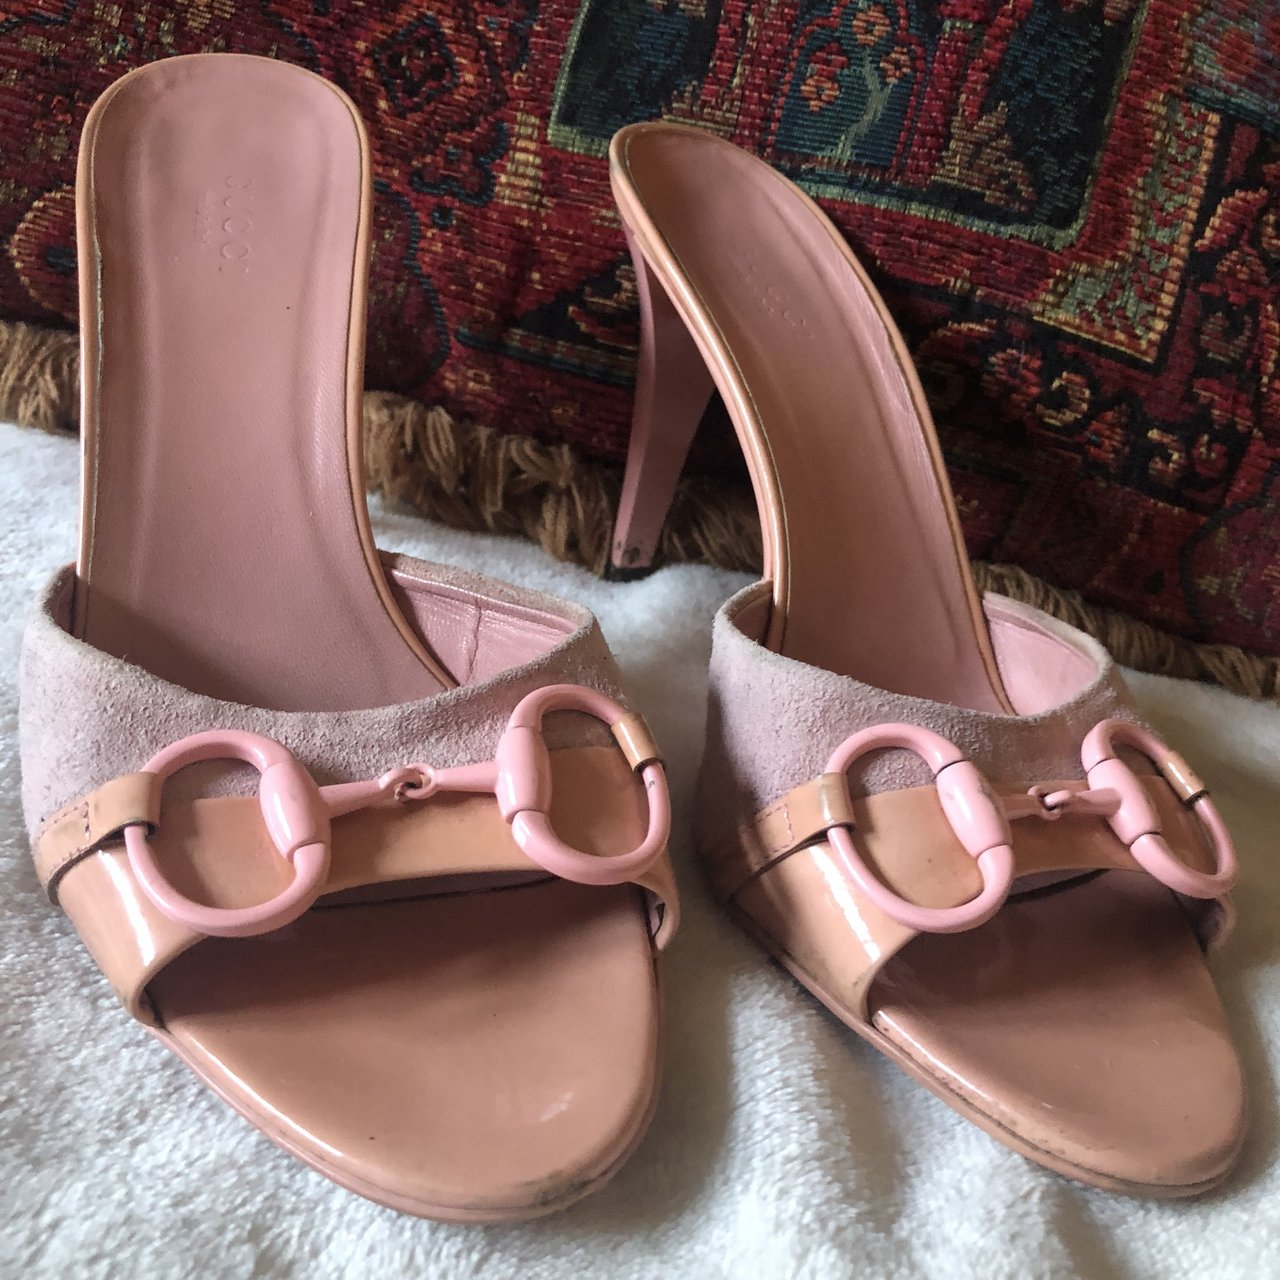 d6d0b2d943d5 vintage gucci sandal heels purchased from the real real so - Depop